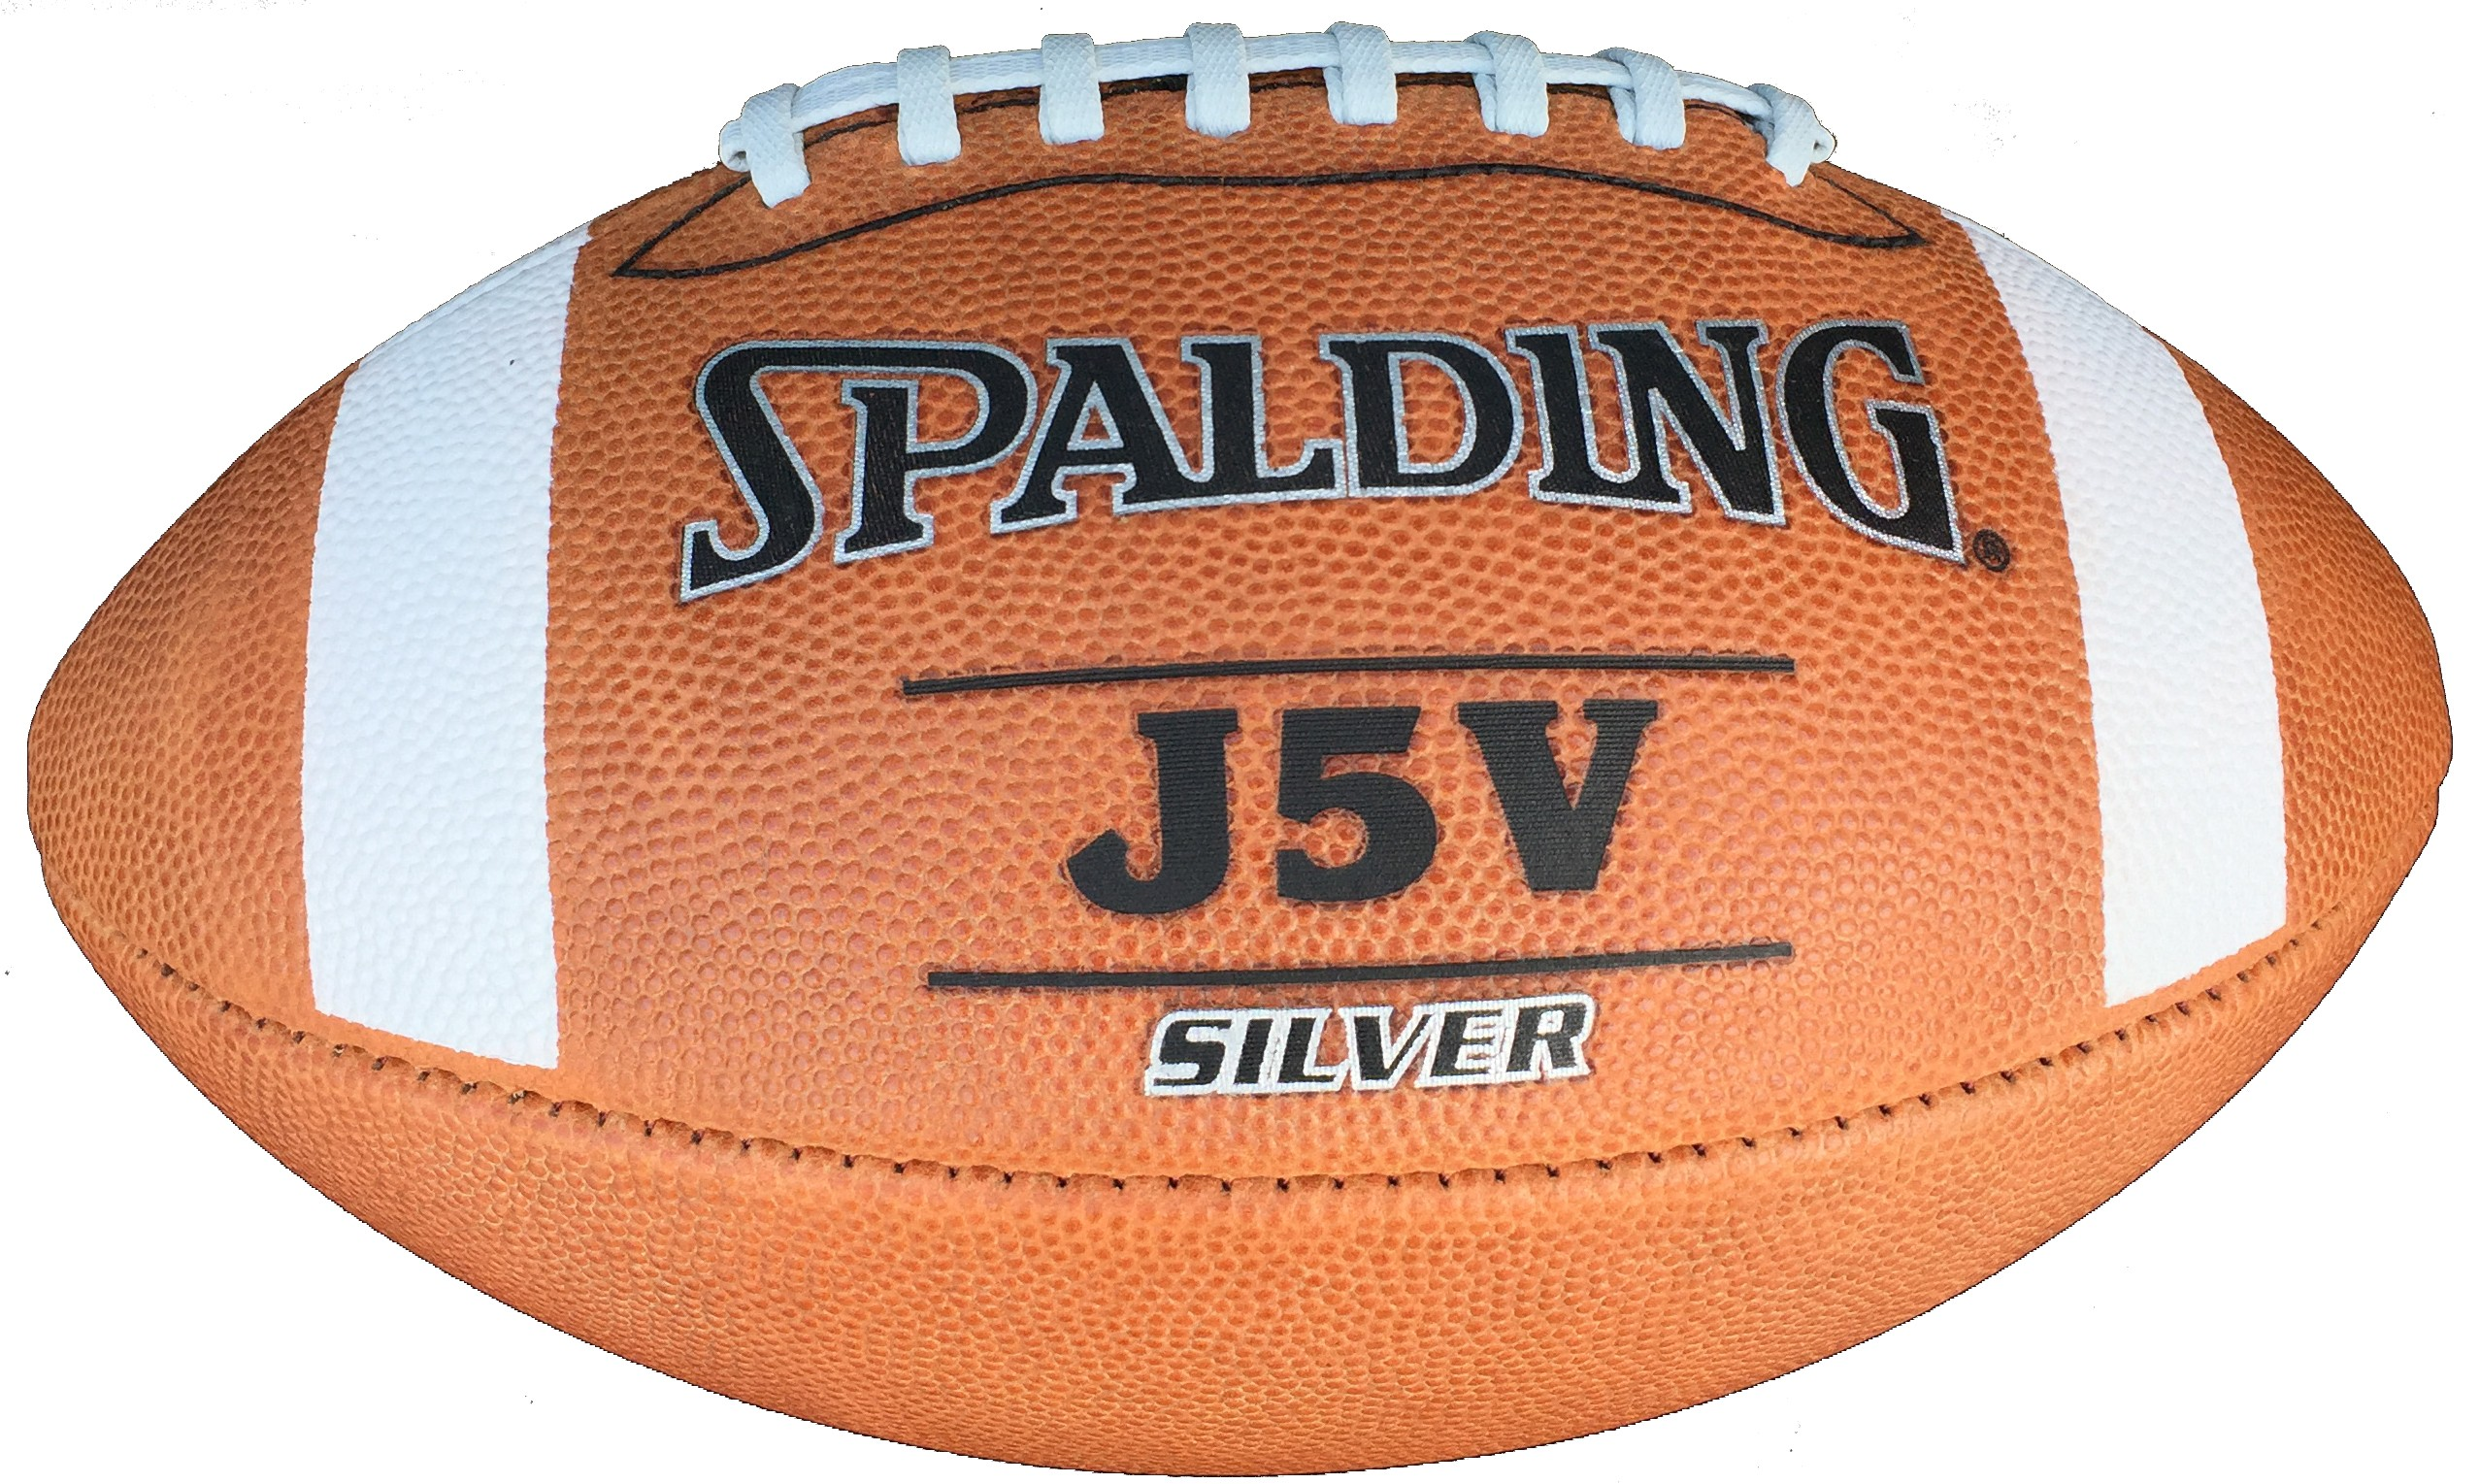 Spalding J5V Silver High School Leather Football | Wizard Sports